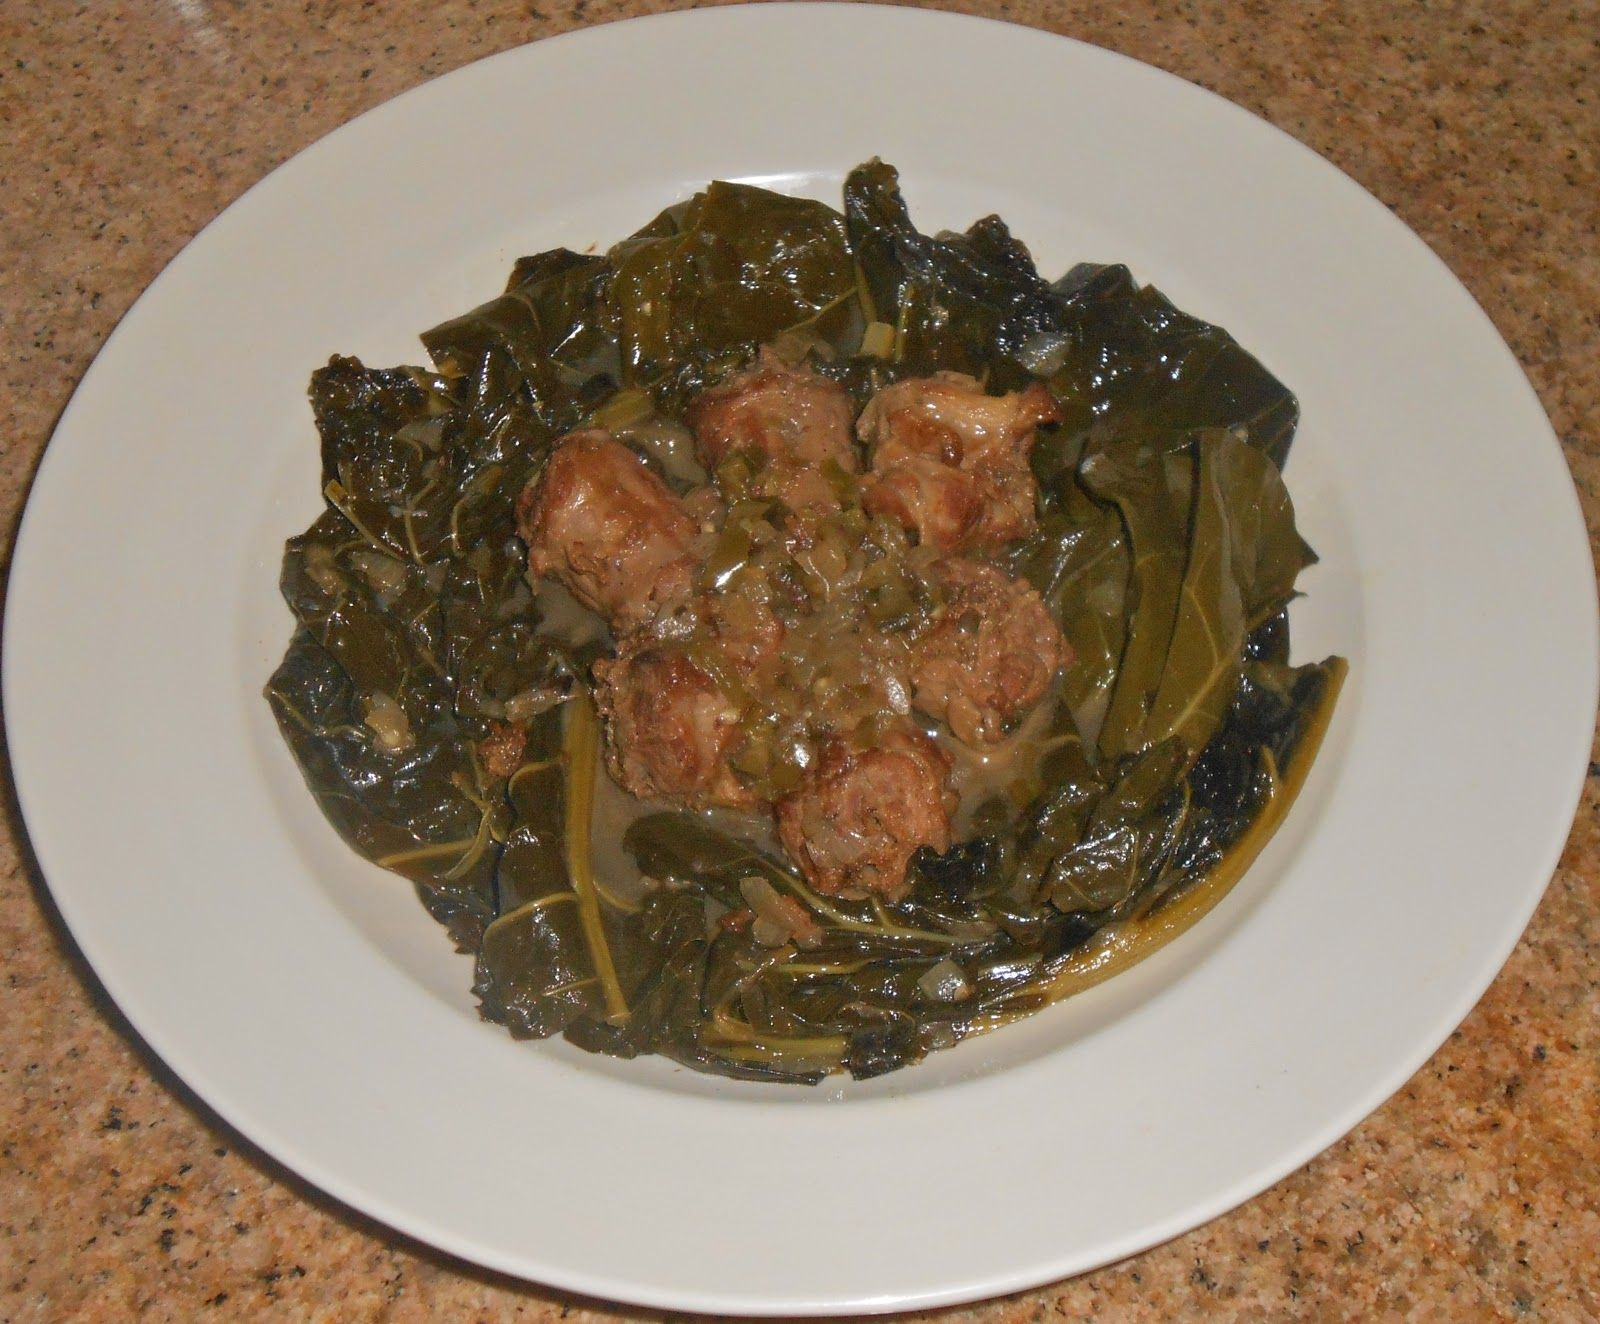 Old fashioned soul food recipes shawnas food and recipe blog old fashioned soul food recipes shawnas food and recipe blog collard greens and forumfinder Choice Image